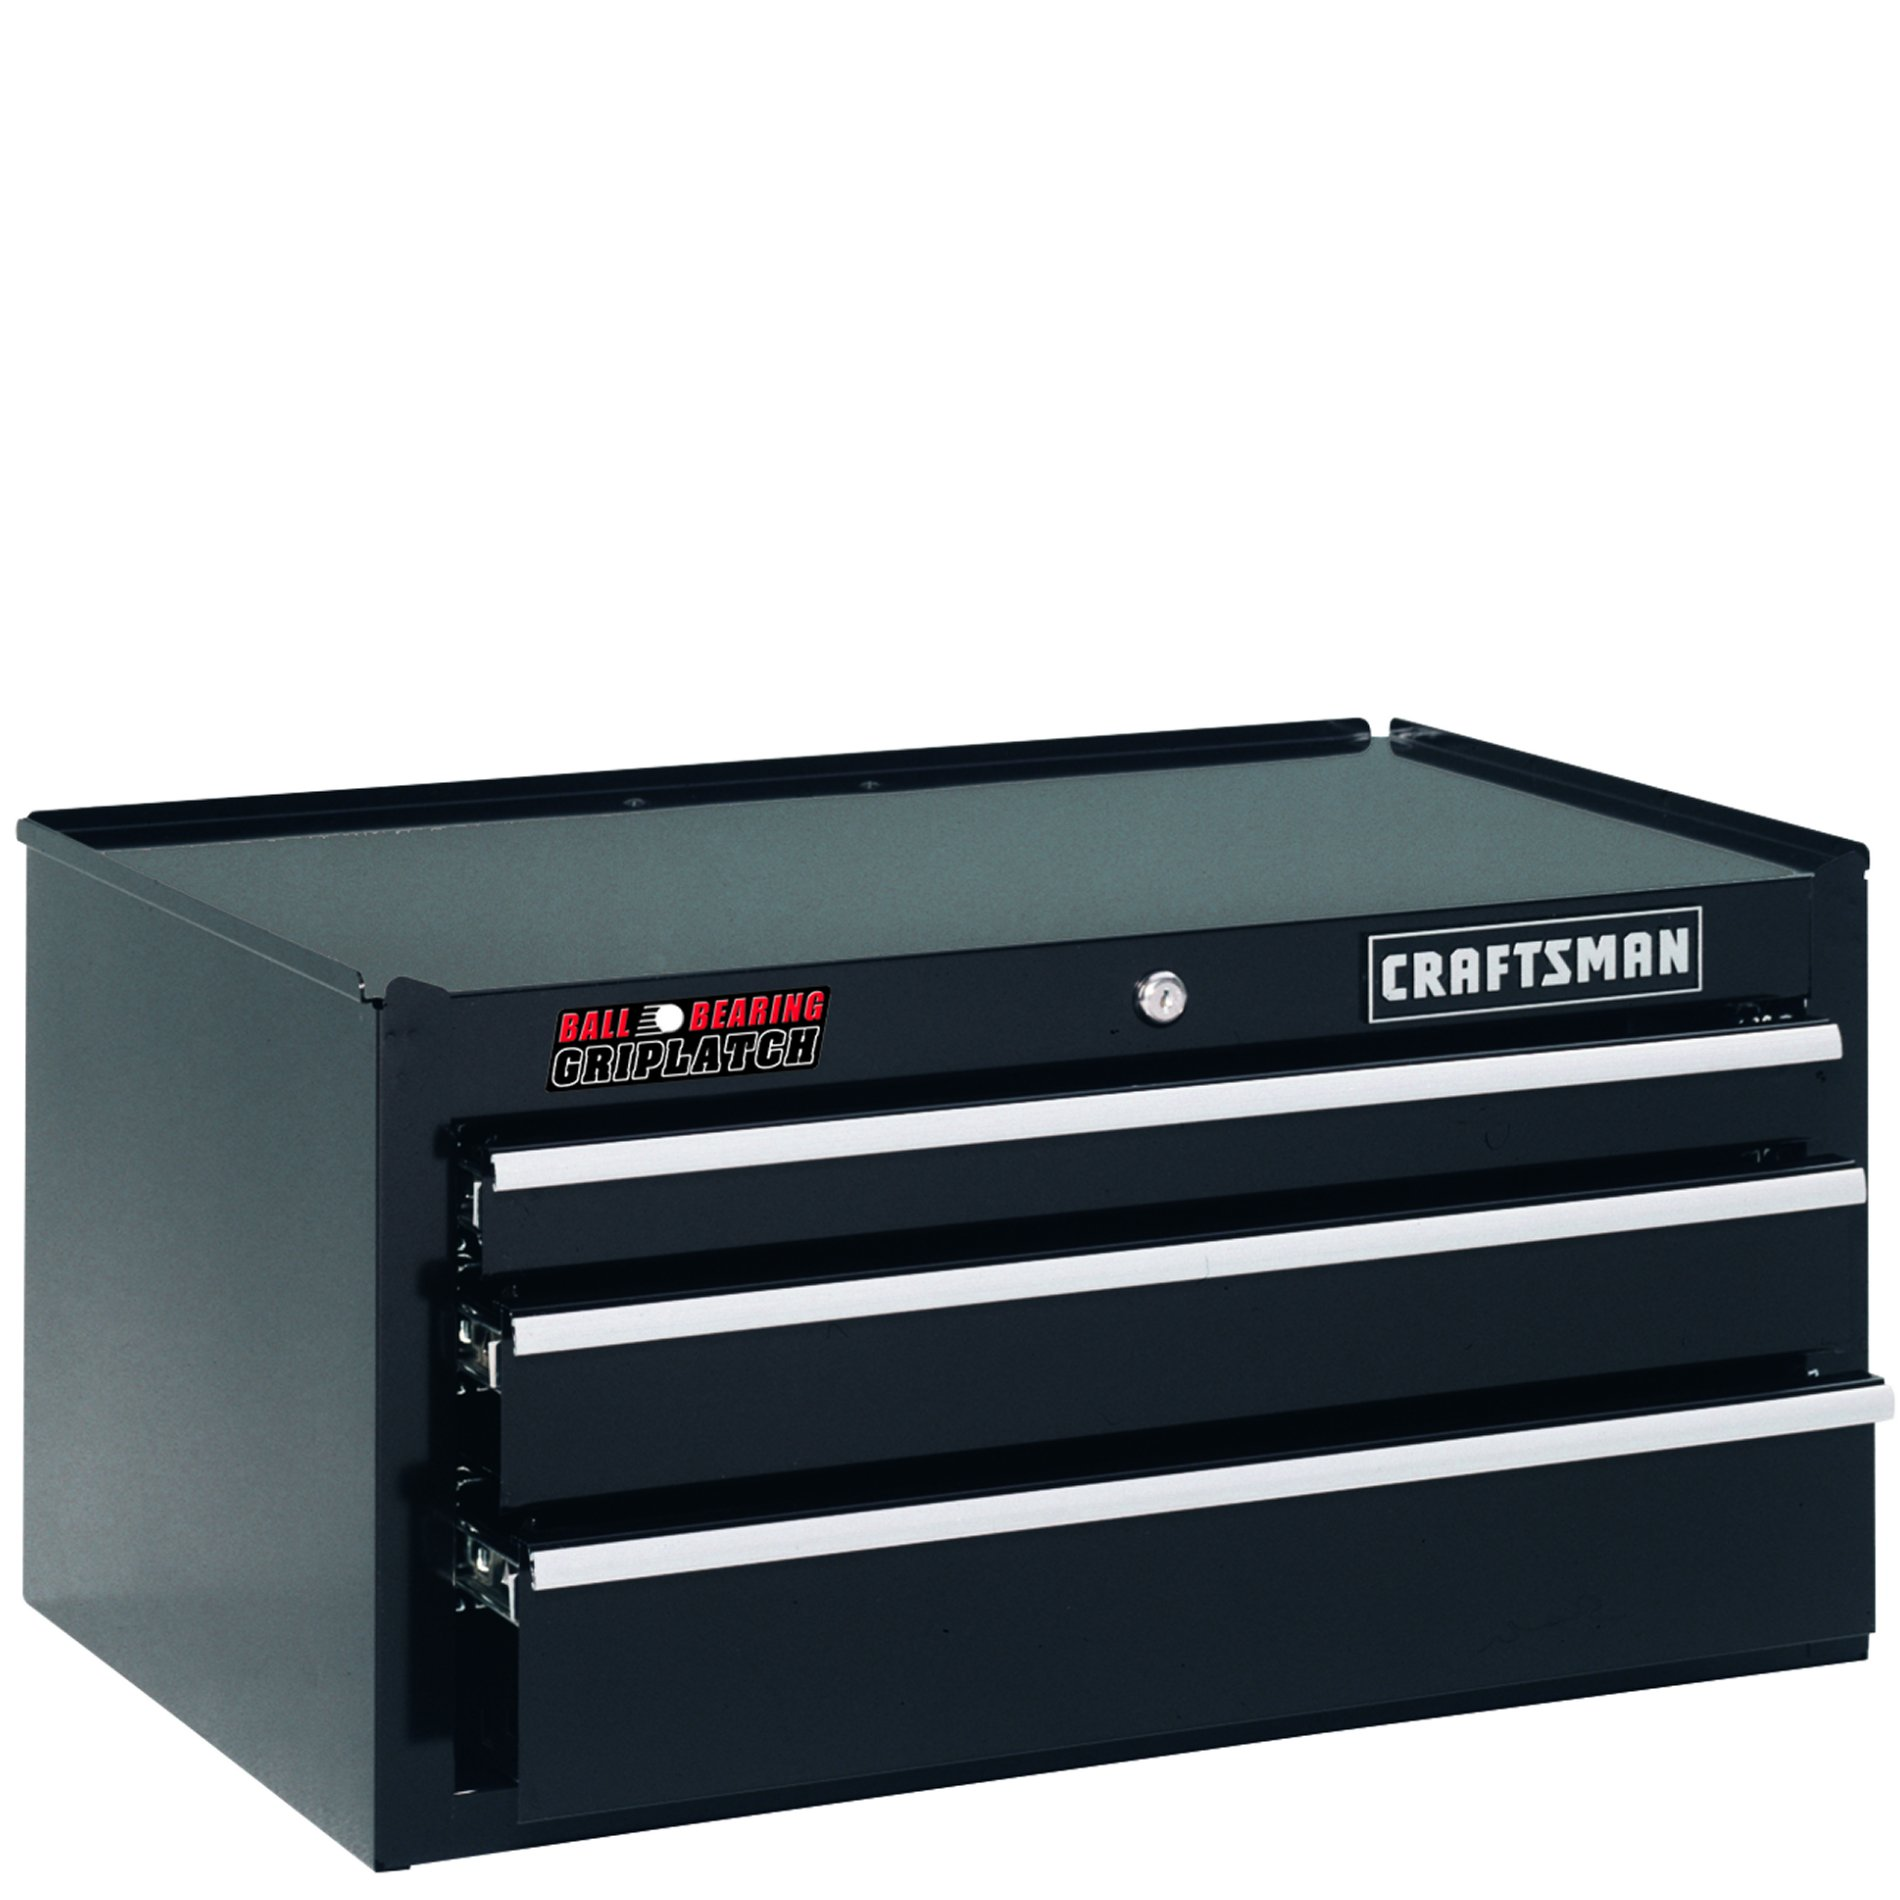 "Craftsman 26"""" Wide 3-Drawer Ball-Bearing GRIPLATCH Middle Chest - Black"